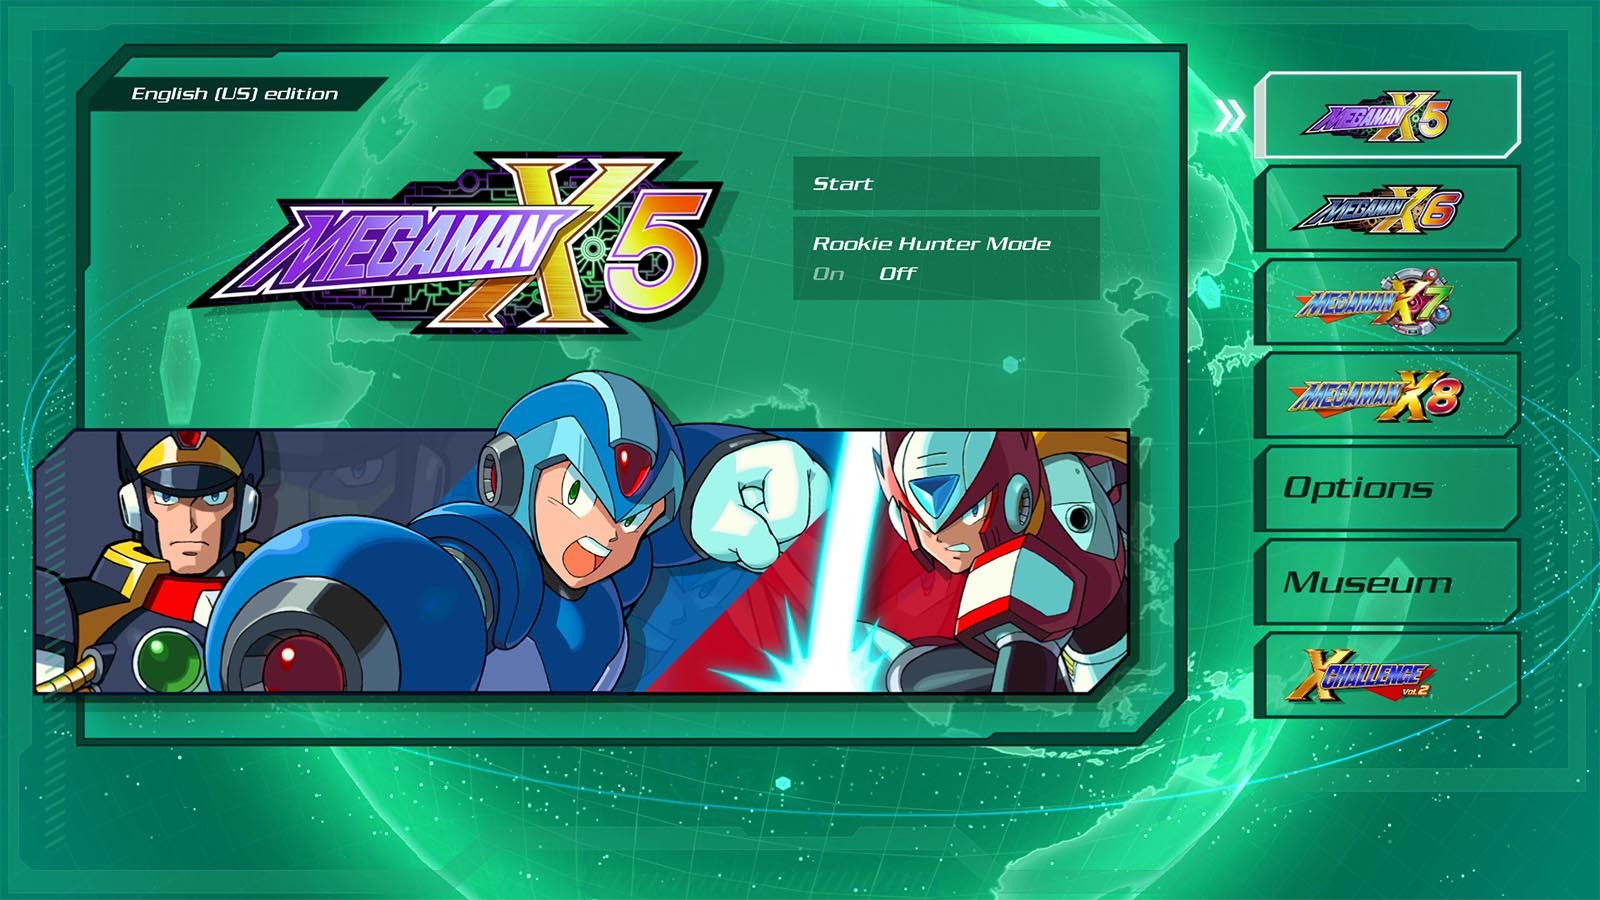 Mega Man X Legacy Collection 2 [Steam CD Key] for PC - Buy now